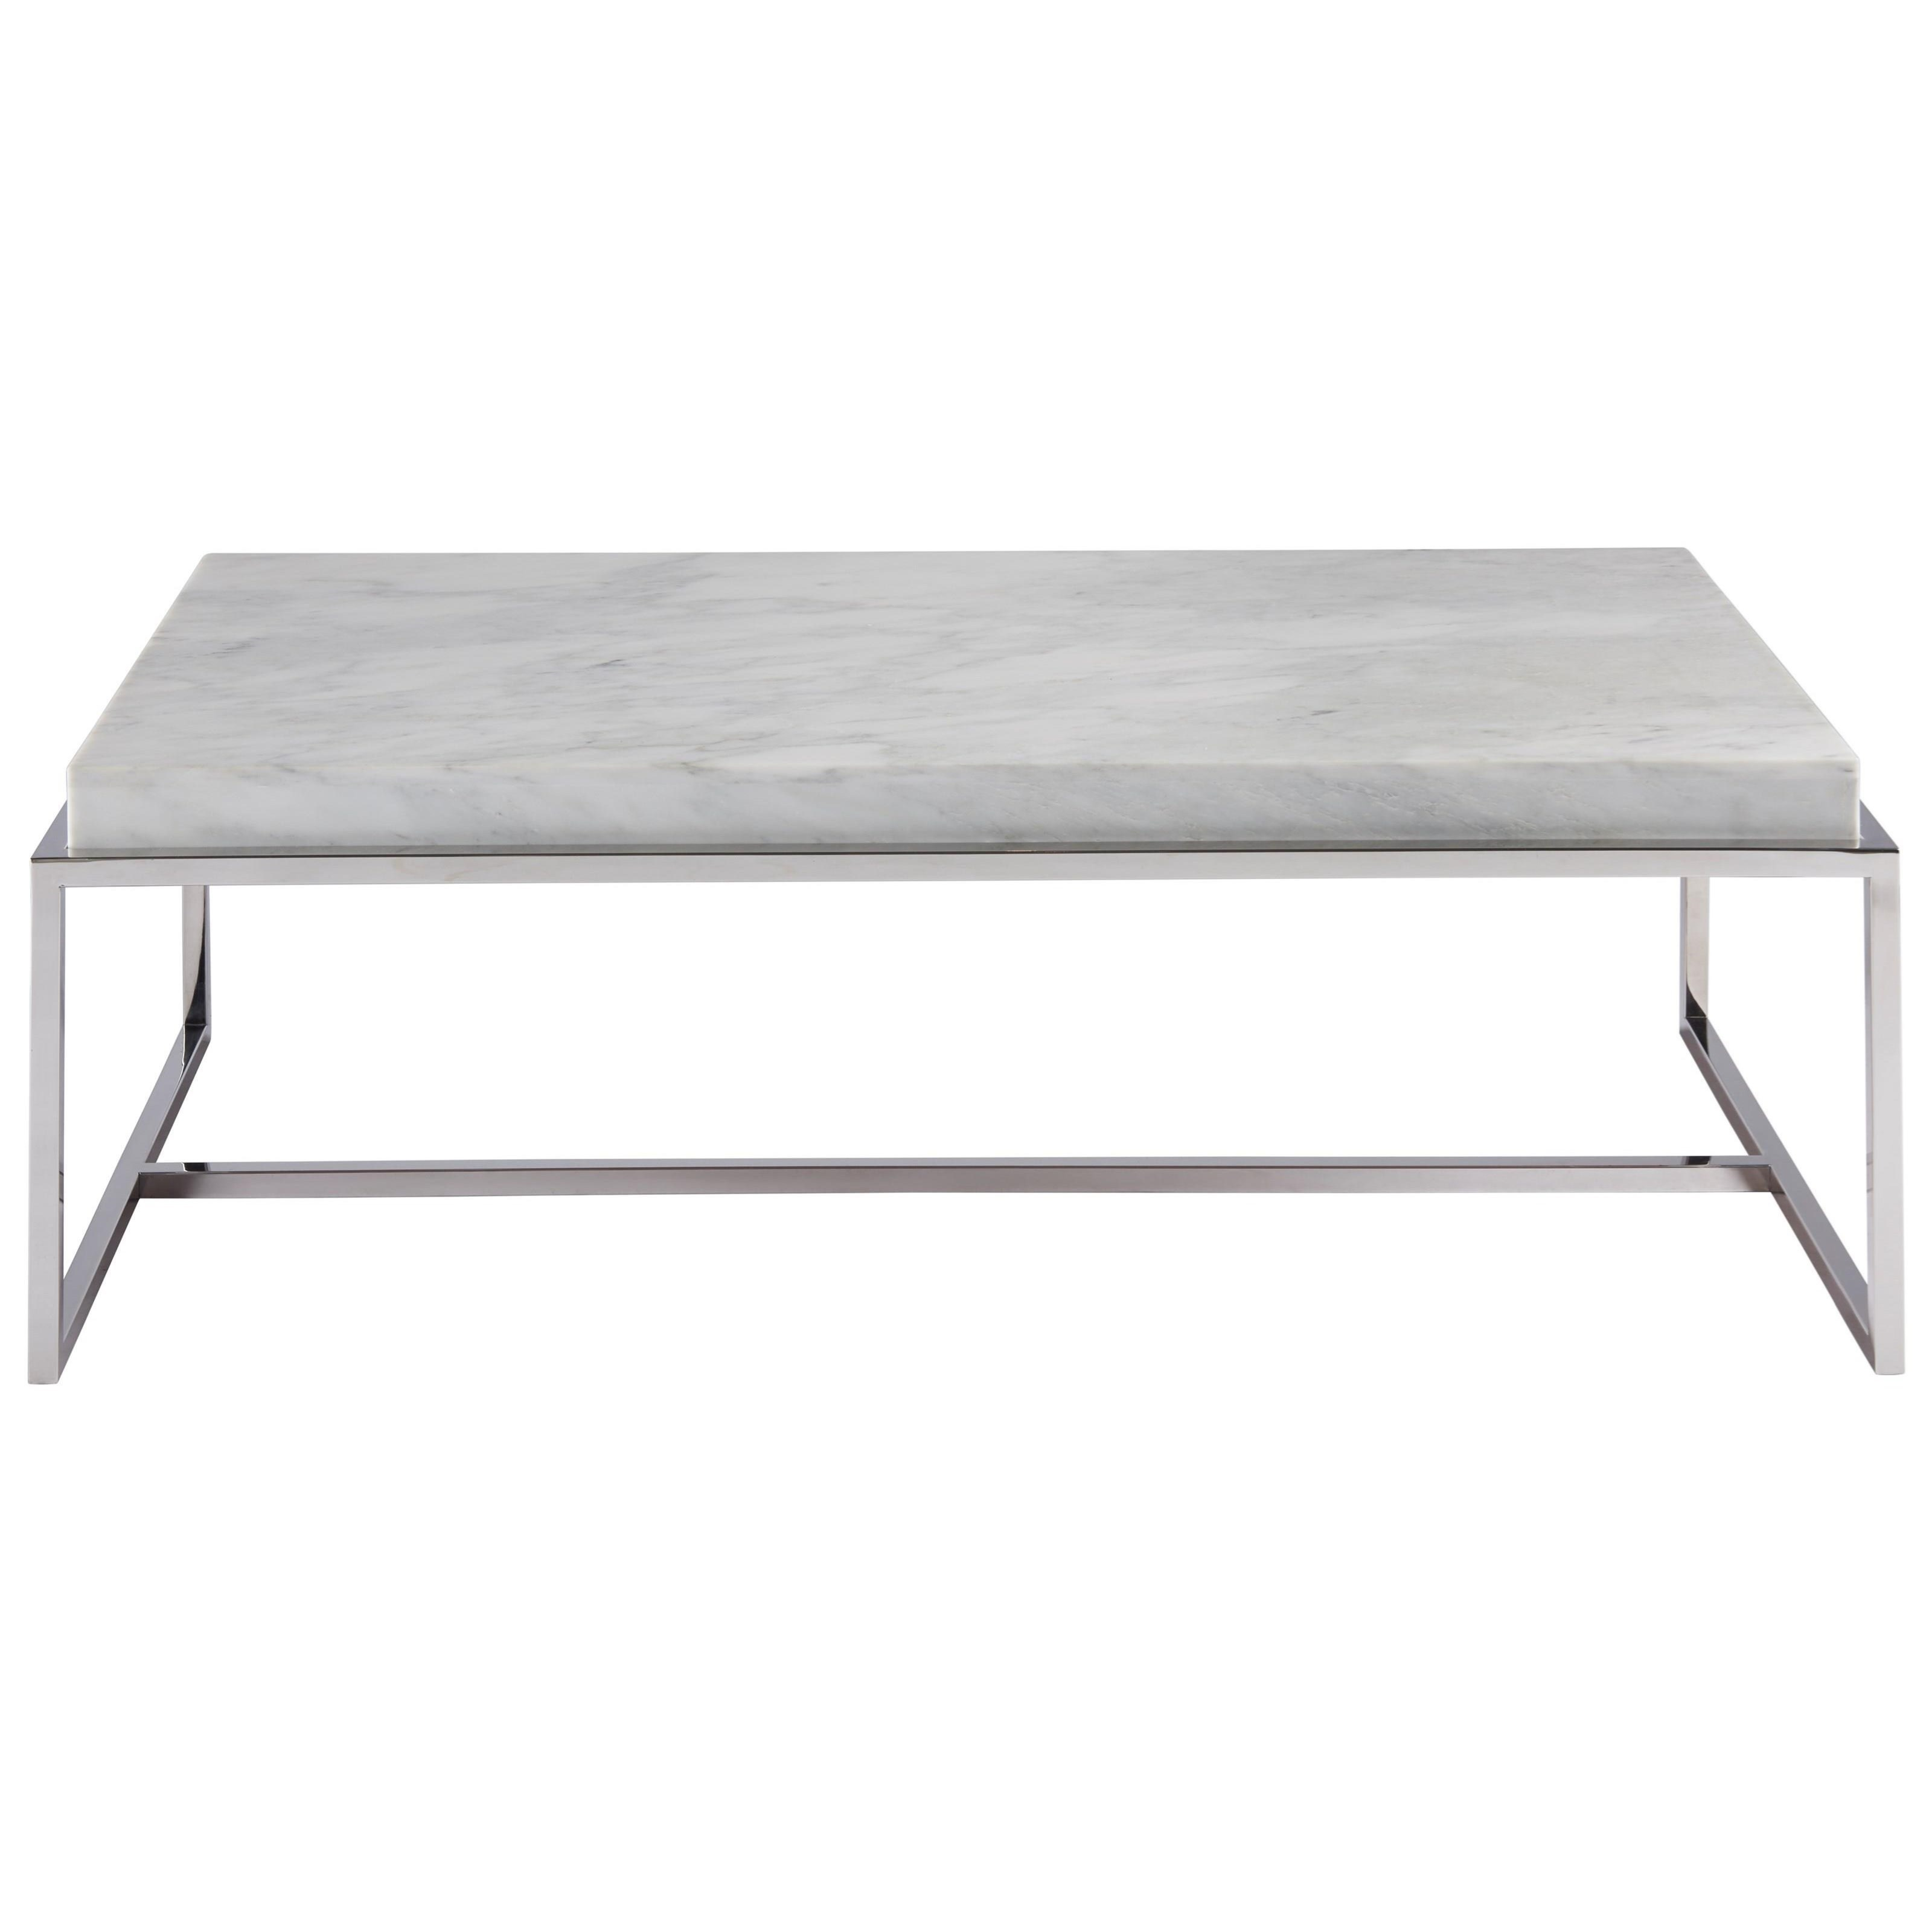 Oconnor Designs Modern Contemporary Cocktail Table With